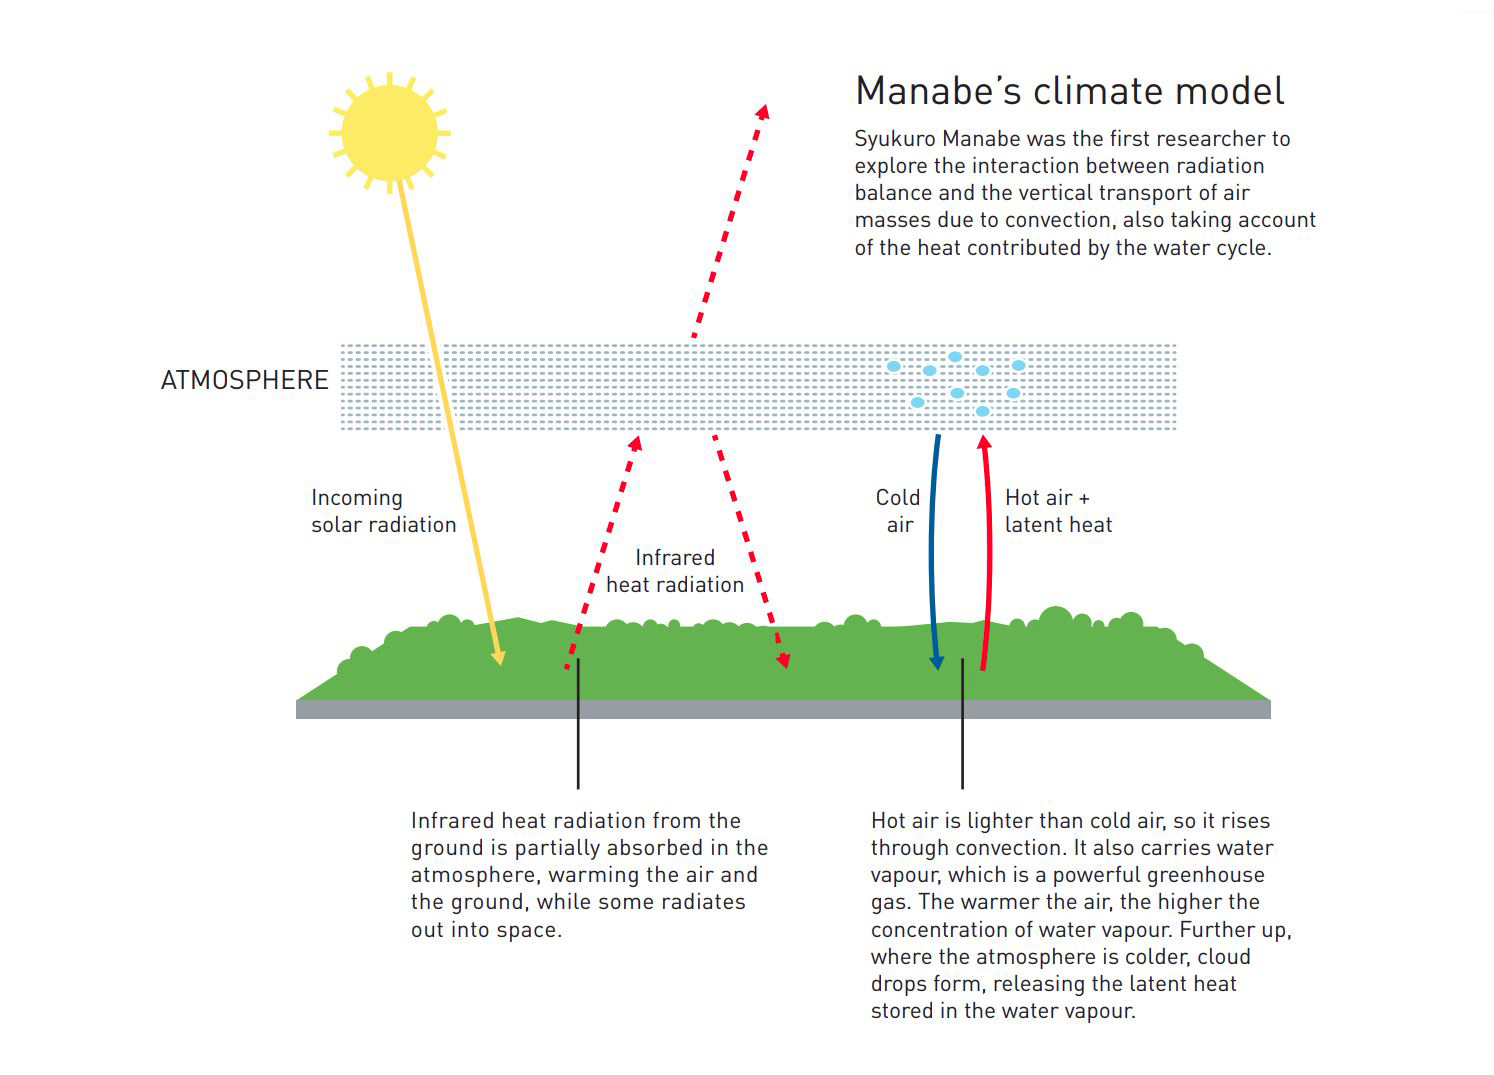 Manabe's climate model